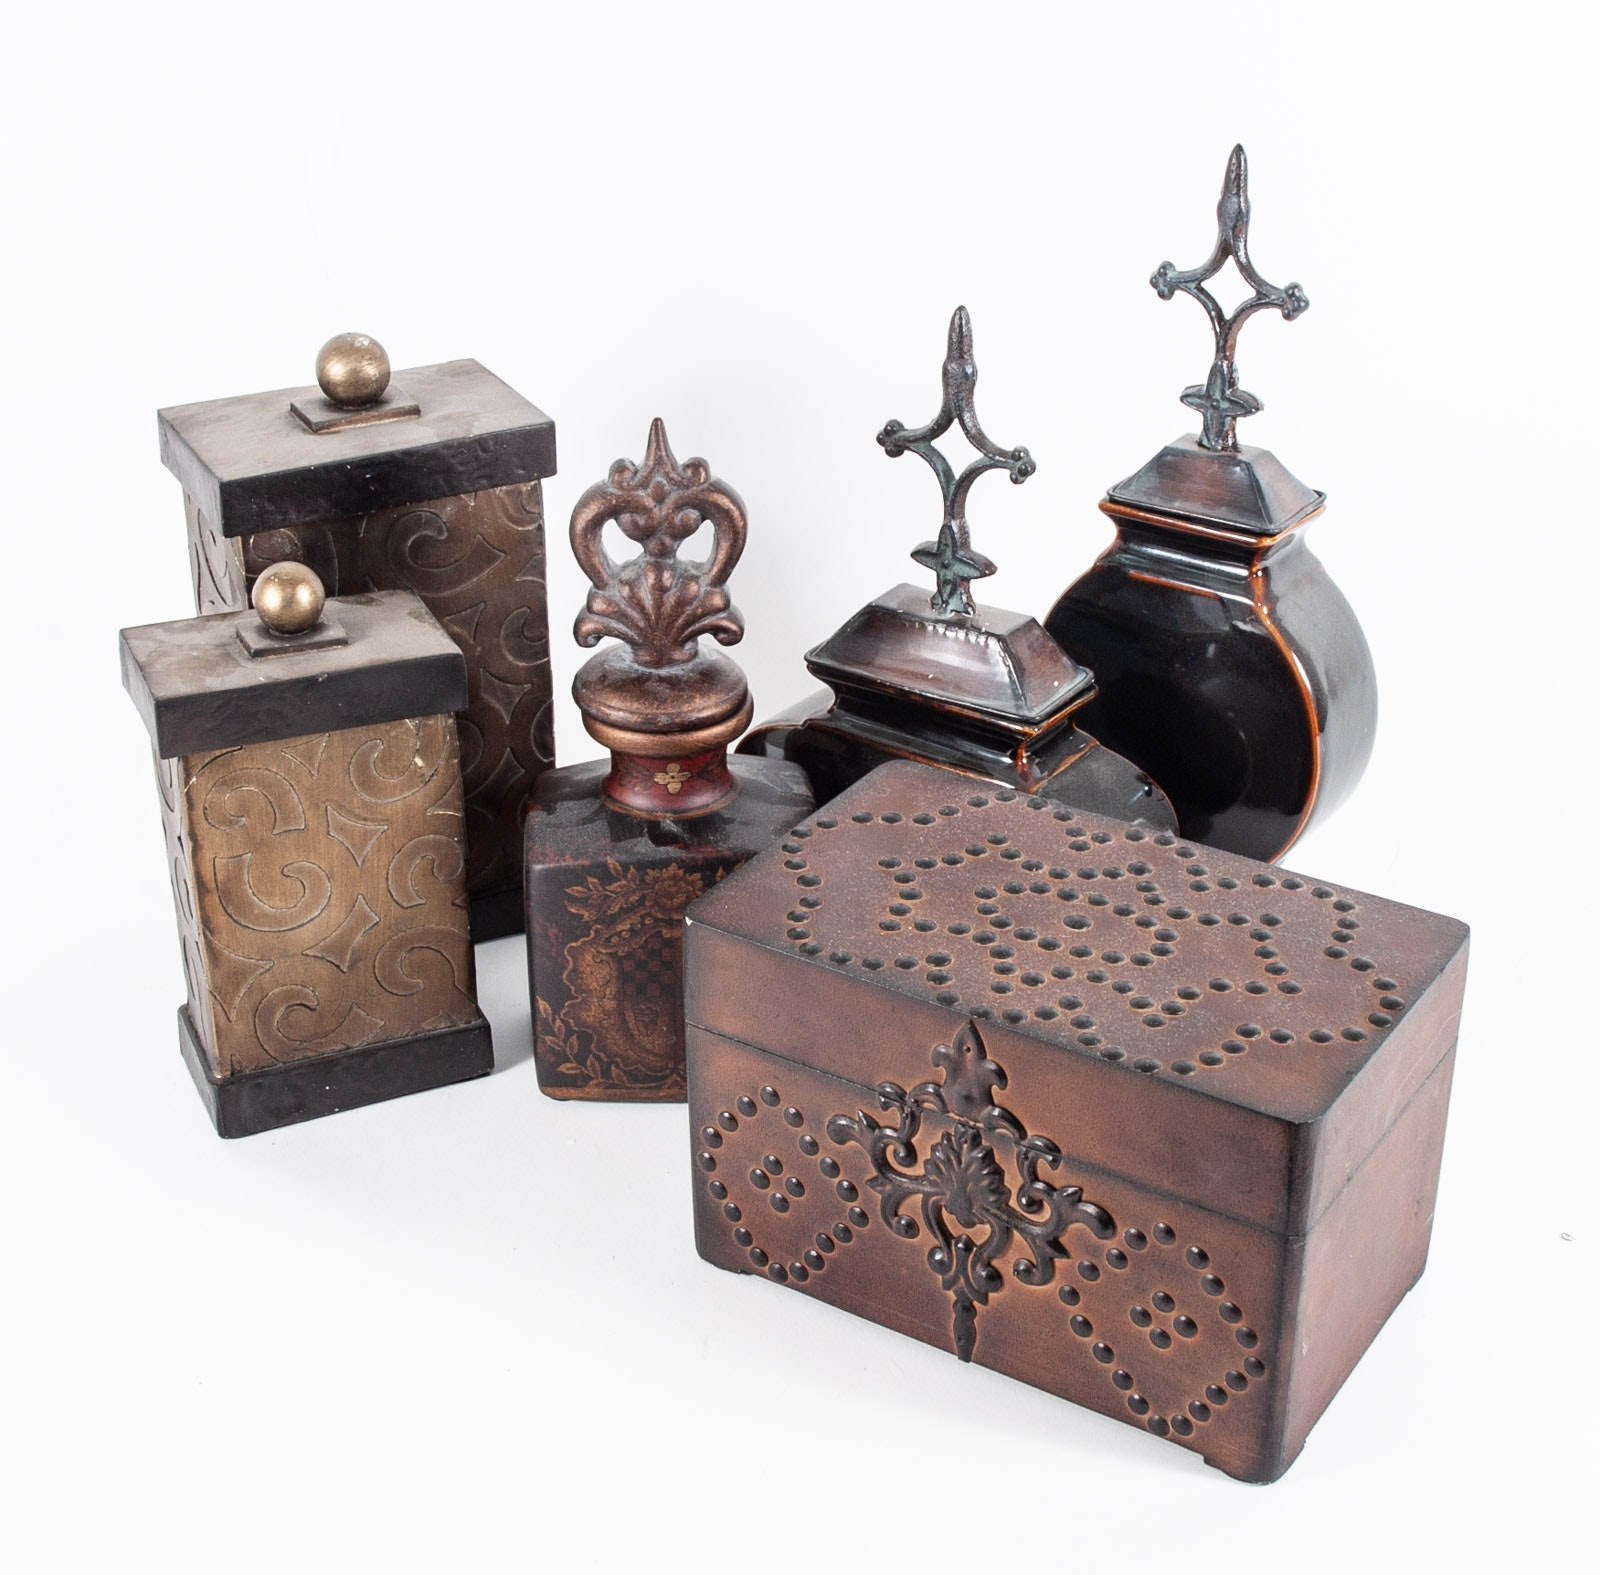 Collection of Decorative Decanters and Boxes